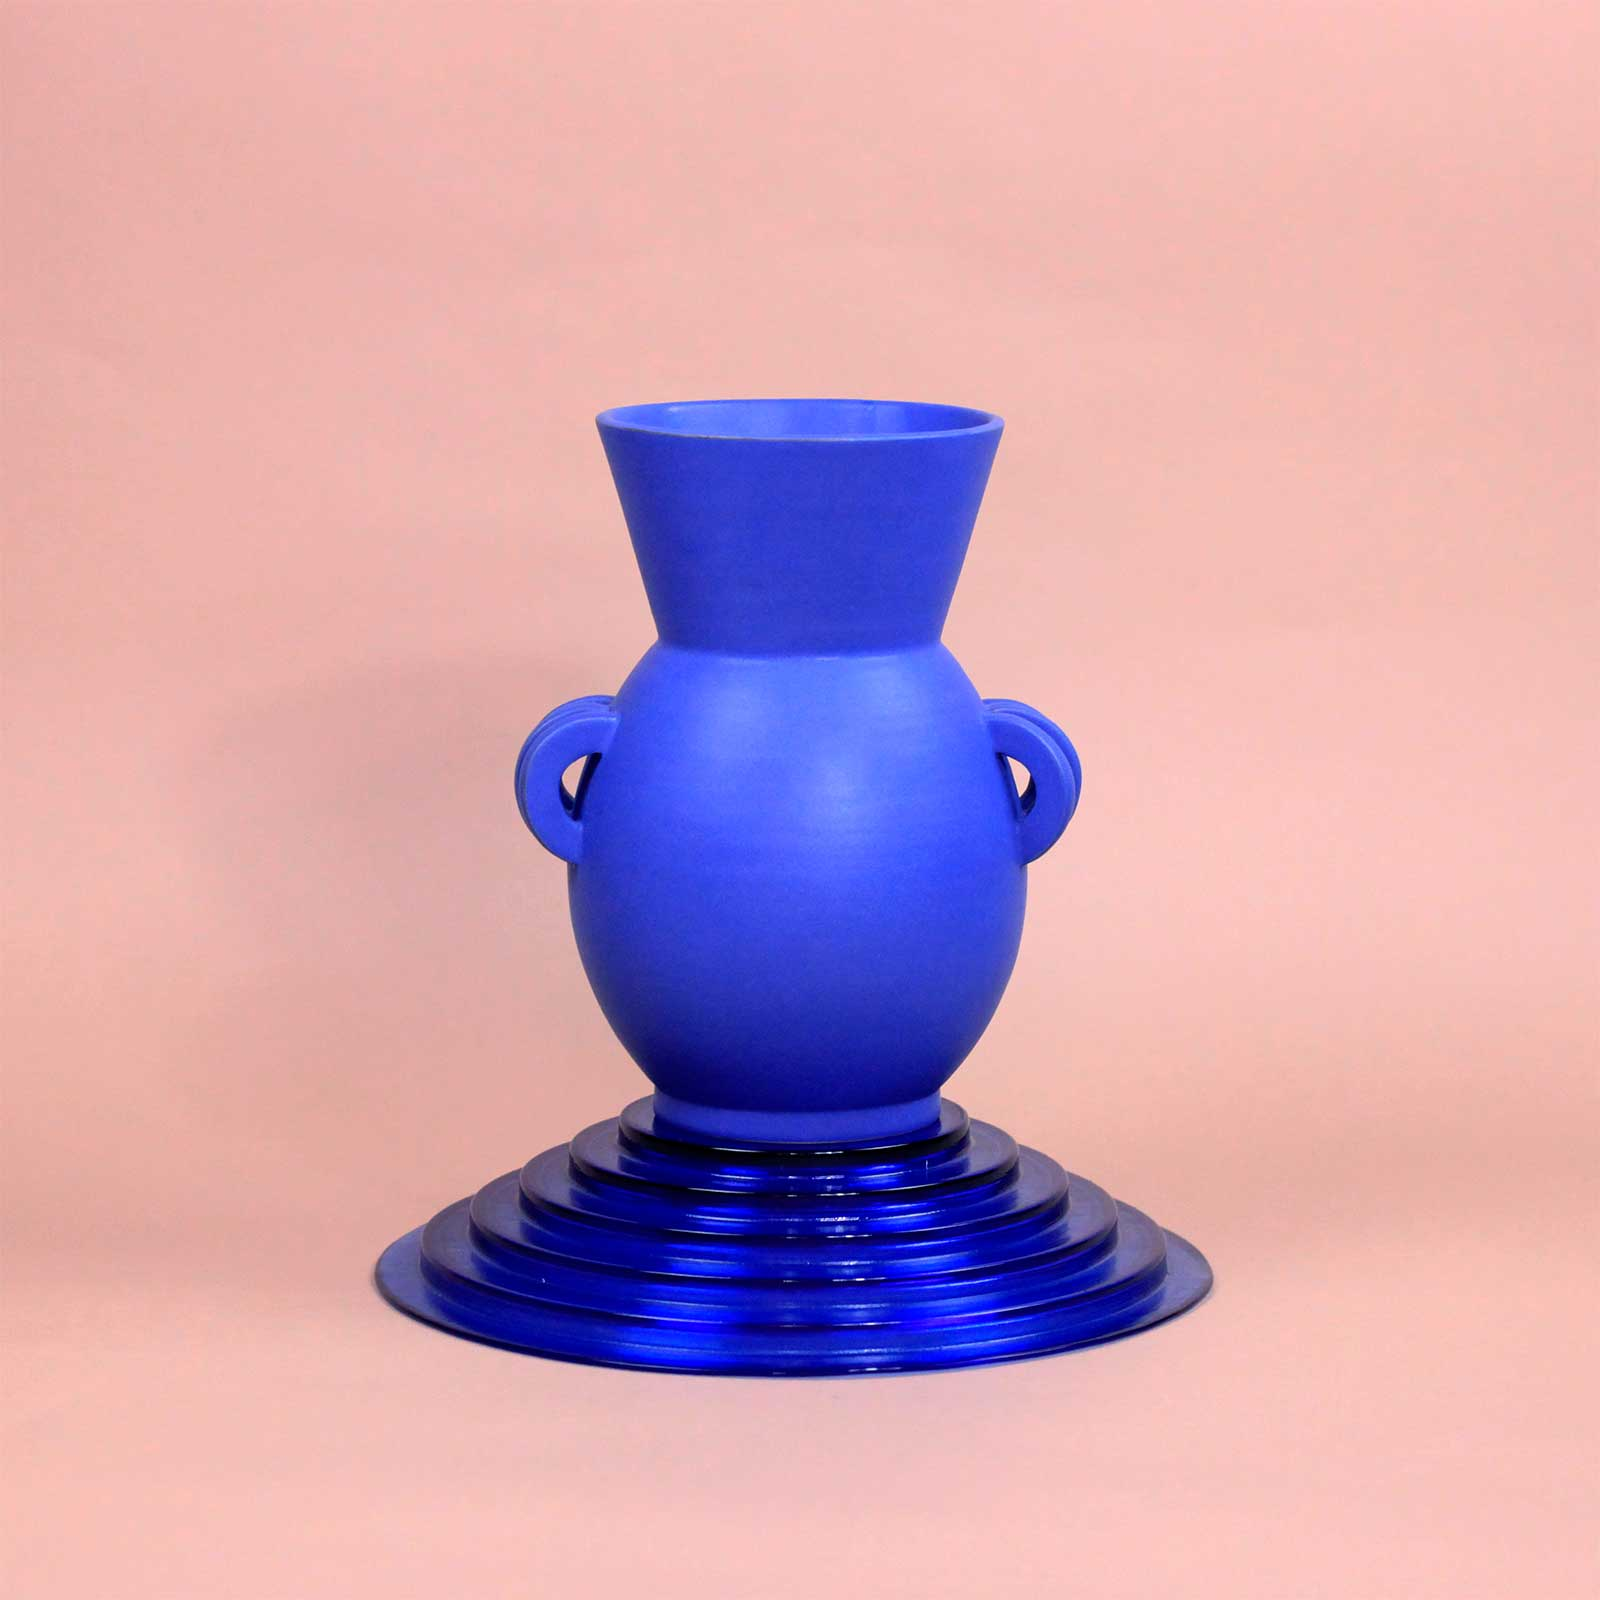 VASE LE GRAND BLEU III CERAMICS BY LAURA